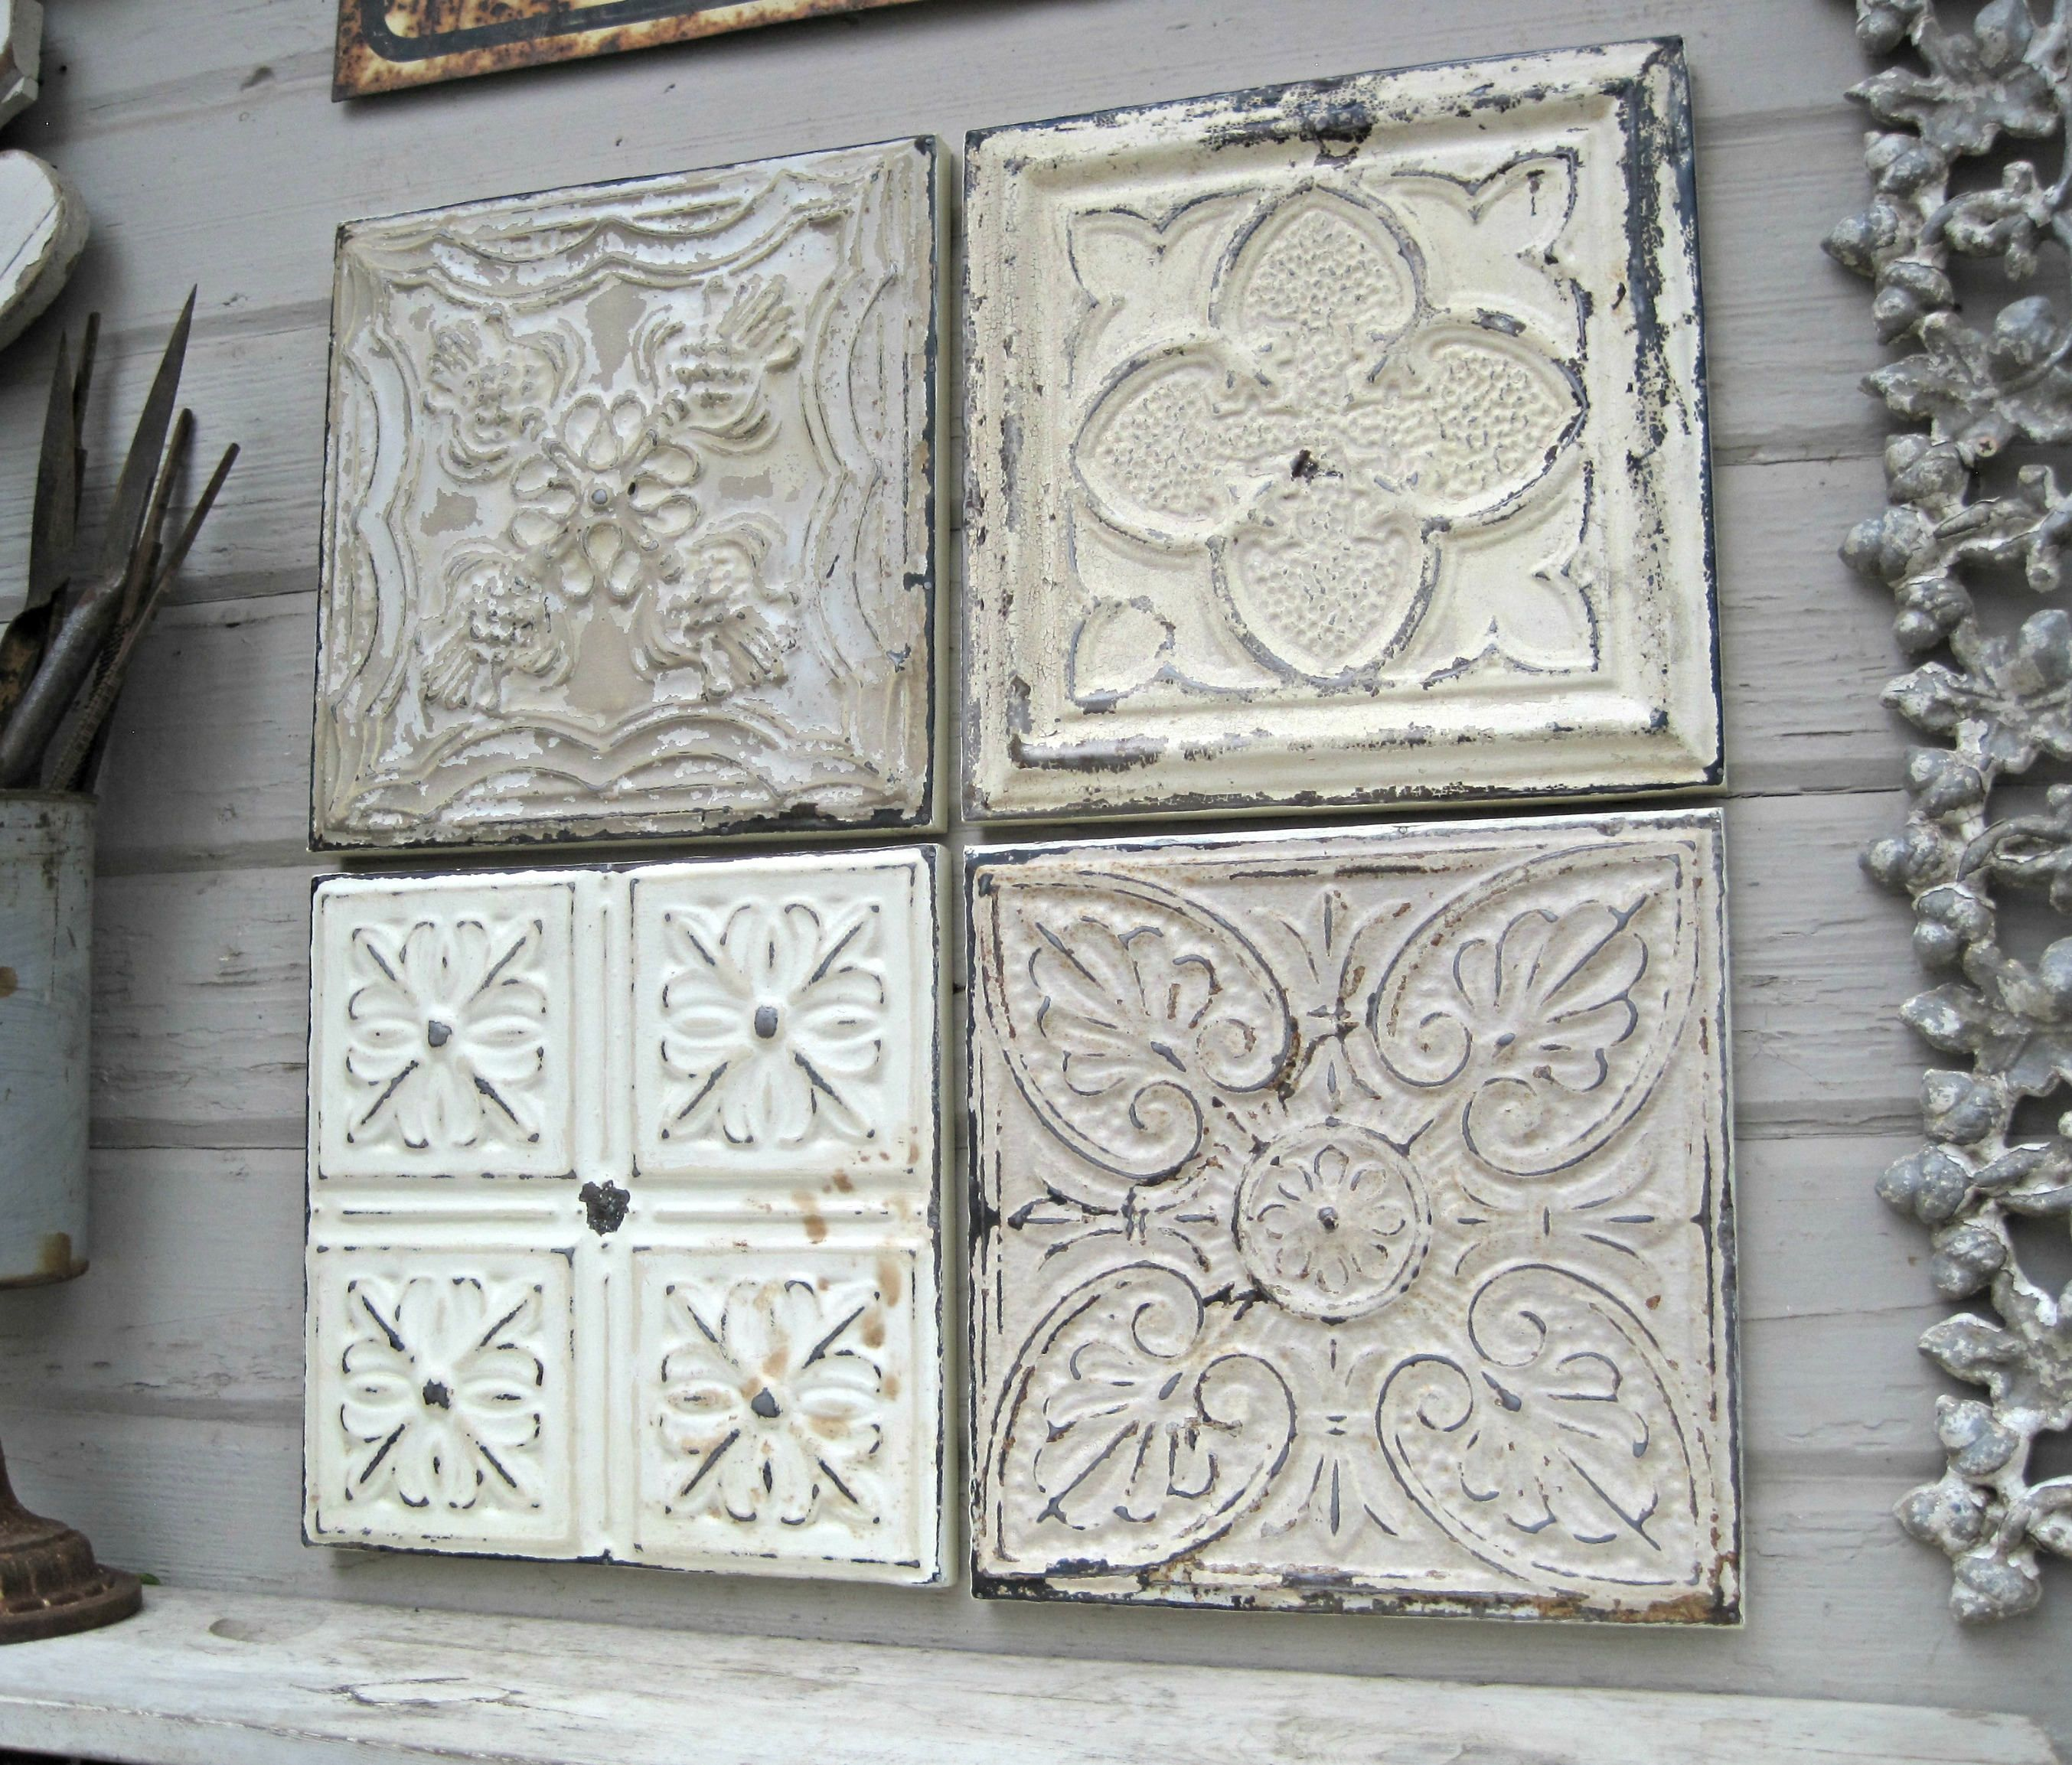 Rustic Wall Decor Antique Architectural Salvage 4 Framed Ceiling Tin Tiles Farmhouse Decor Chippy Paint Vint Antique Wall Decor Fish Wall Decor Wall Decor